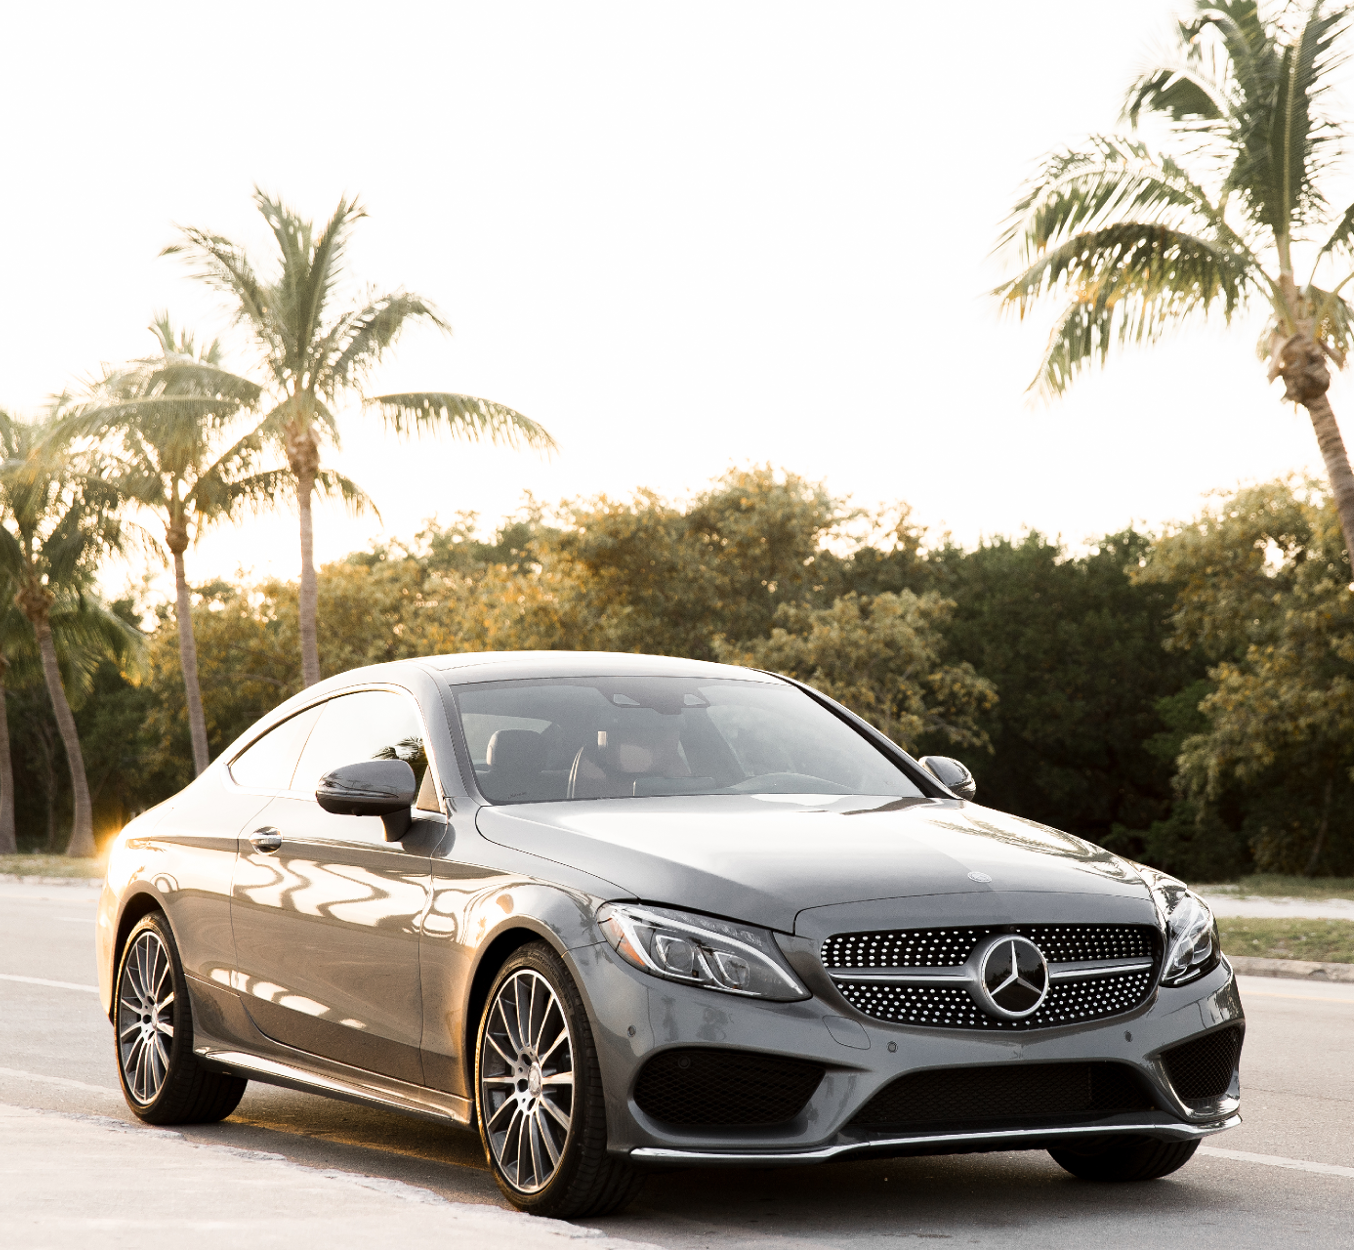 Mercedes-Benz of Nanuet in NY | New & Used Car Dealership